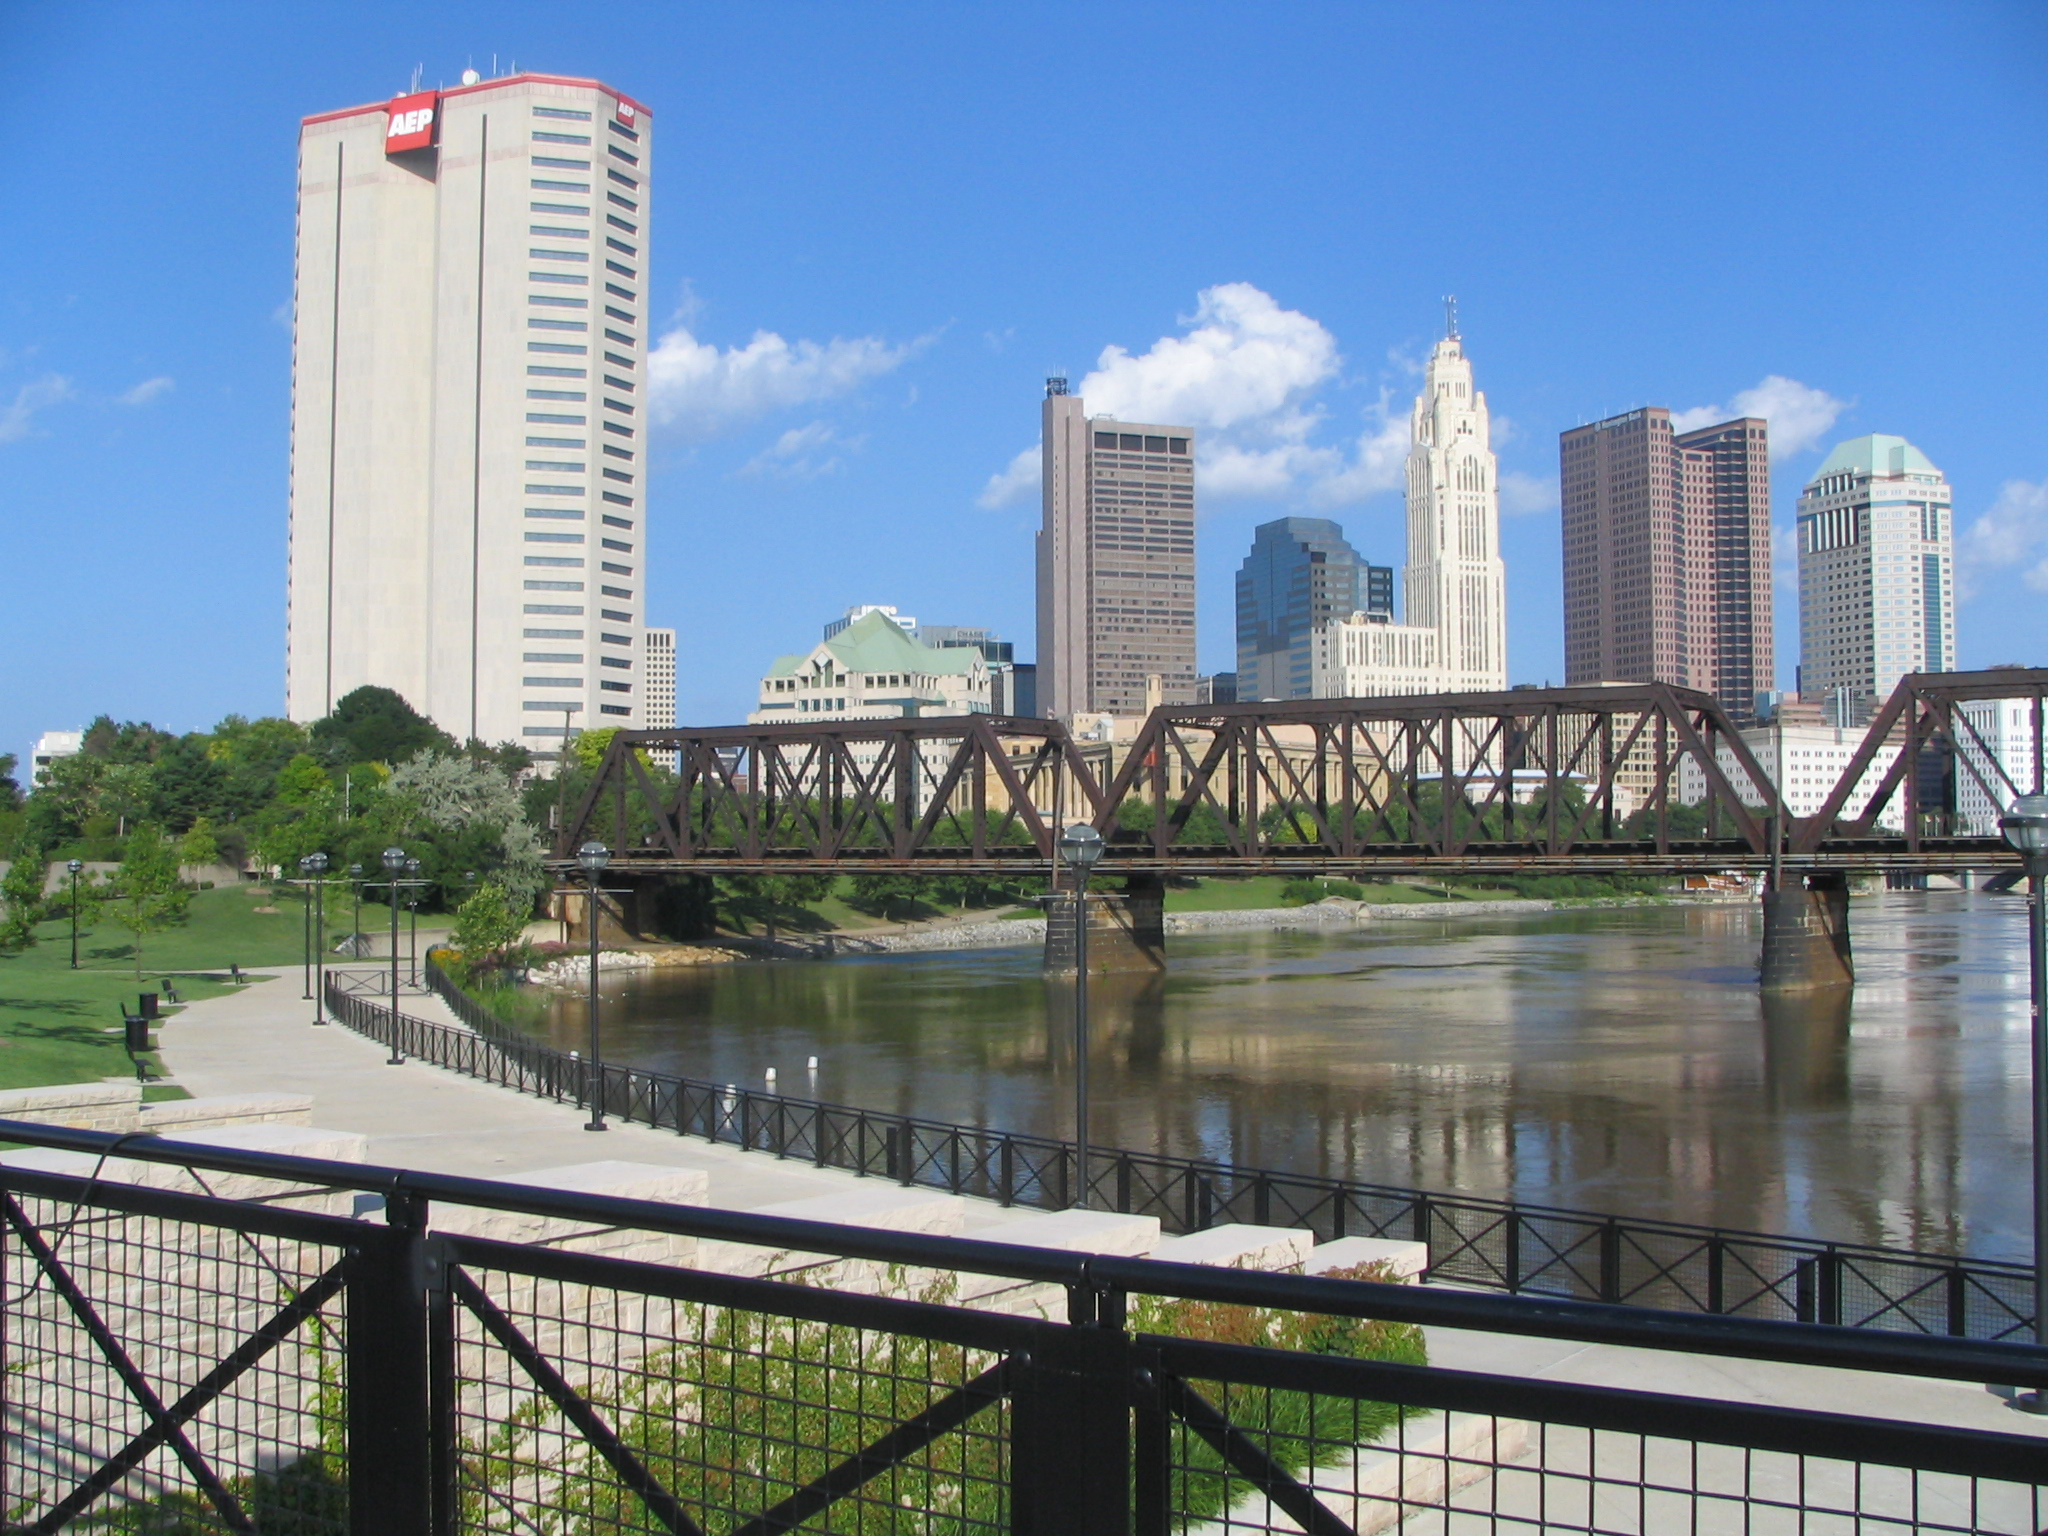 columbus ohio wallpaper - photo #17